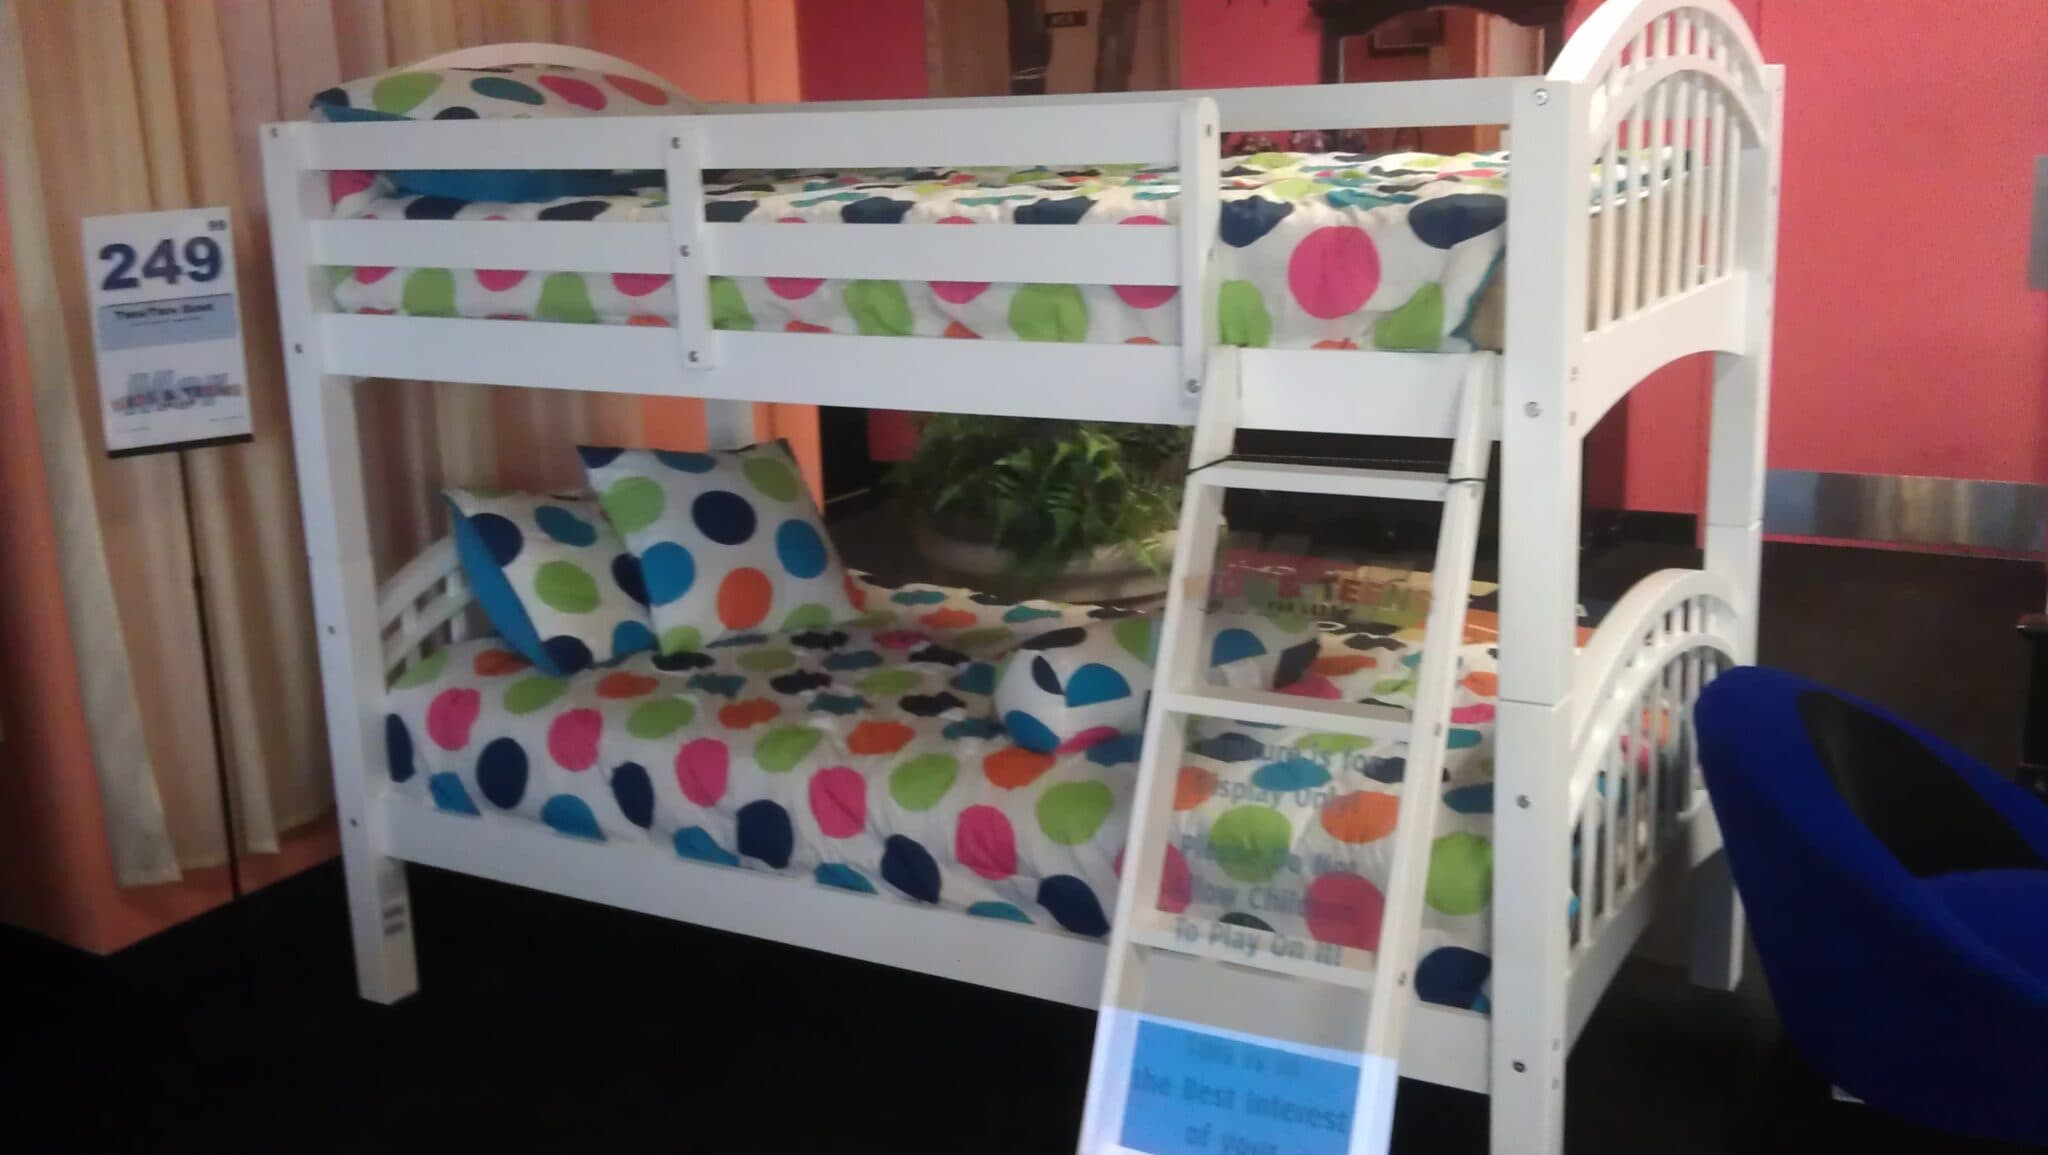 Mor Furniture For Less Get 200 To Spend For 49 Wa Or Ca One Day Left Thrifty Nw Mom